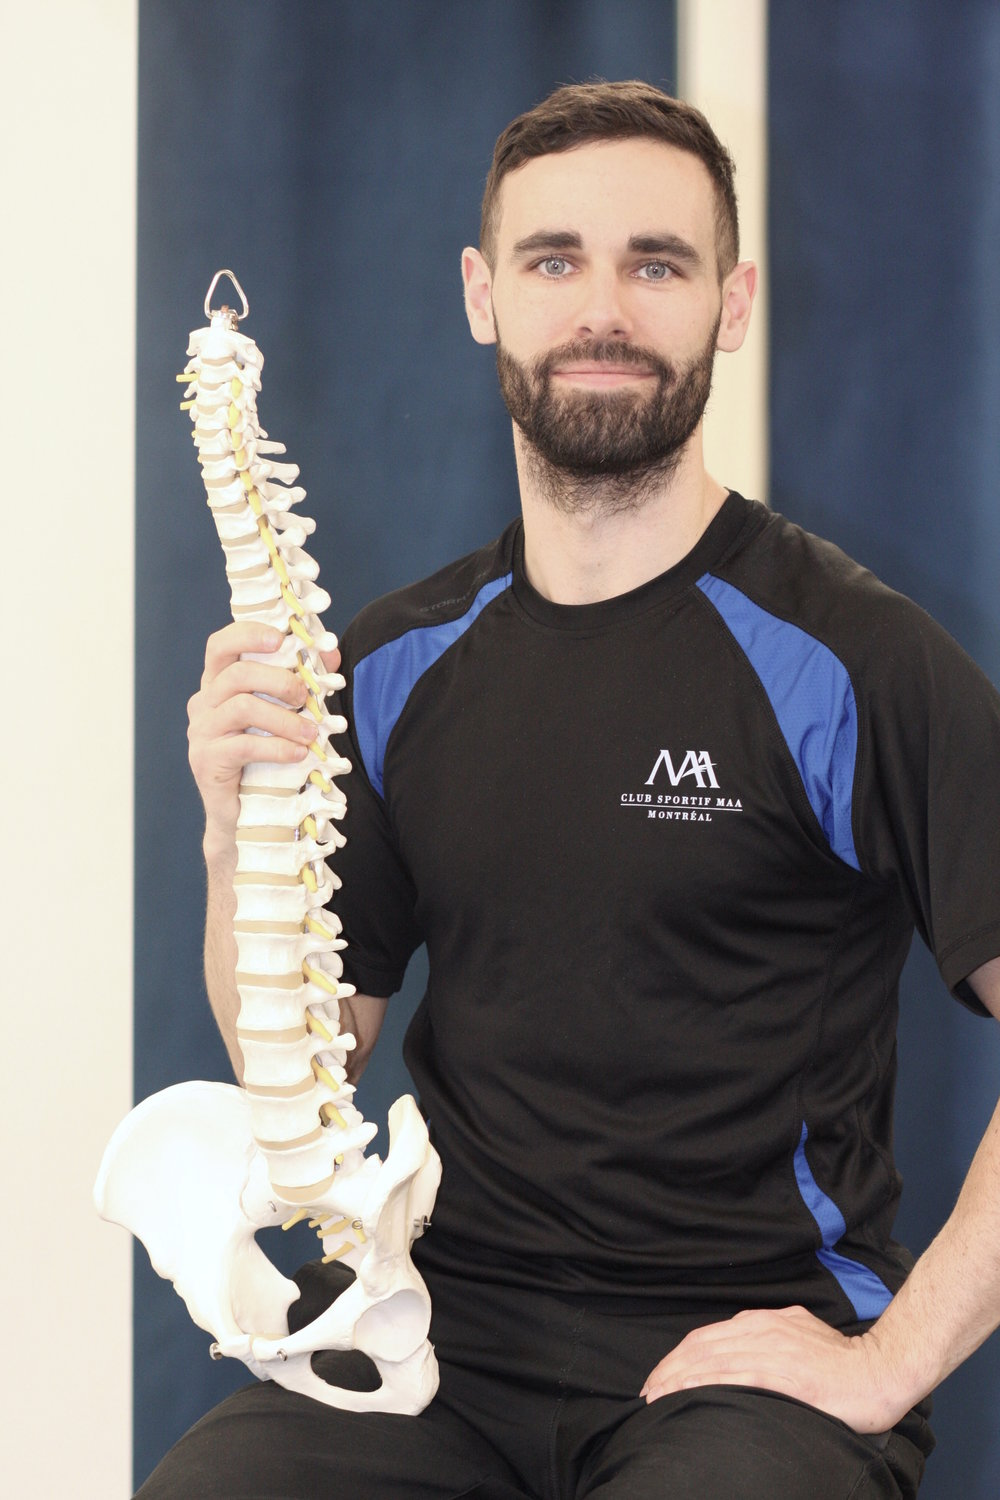 Author: Steve Procter, MSc, BSc, PT, AT, CEP, CPT, Fellow-HFFC  Clinical Director, Physiotherapist, Trainer -  Club Sportif MAA